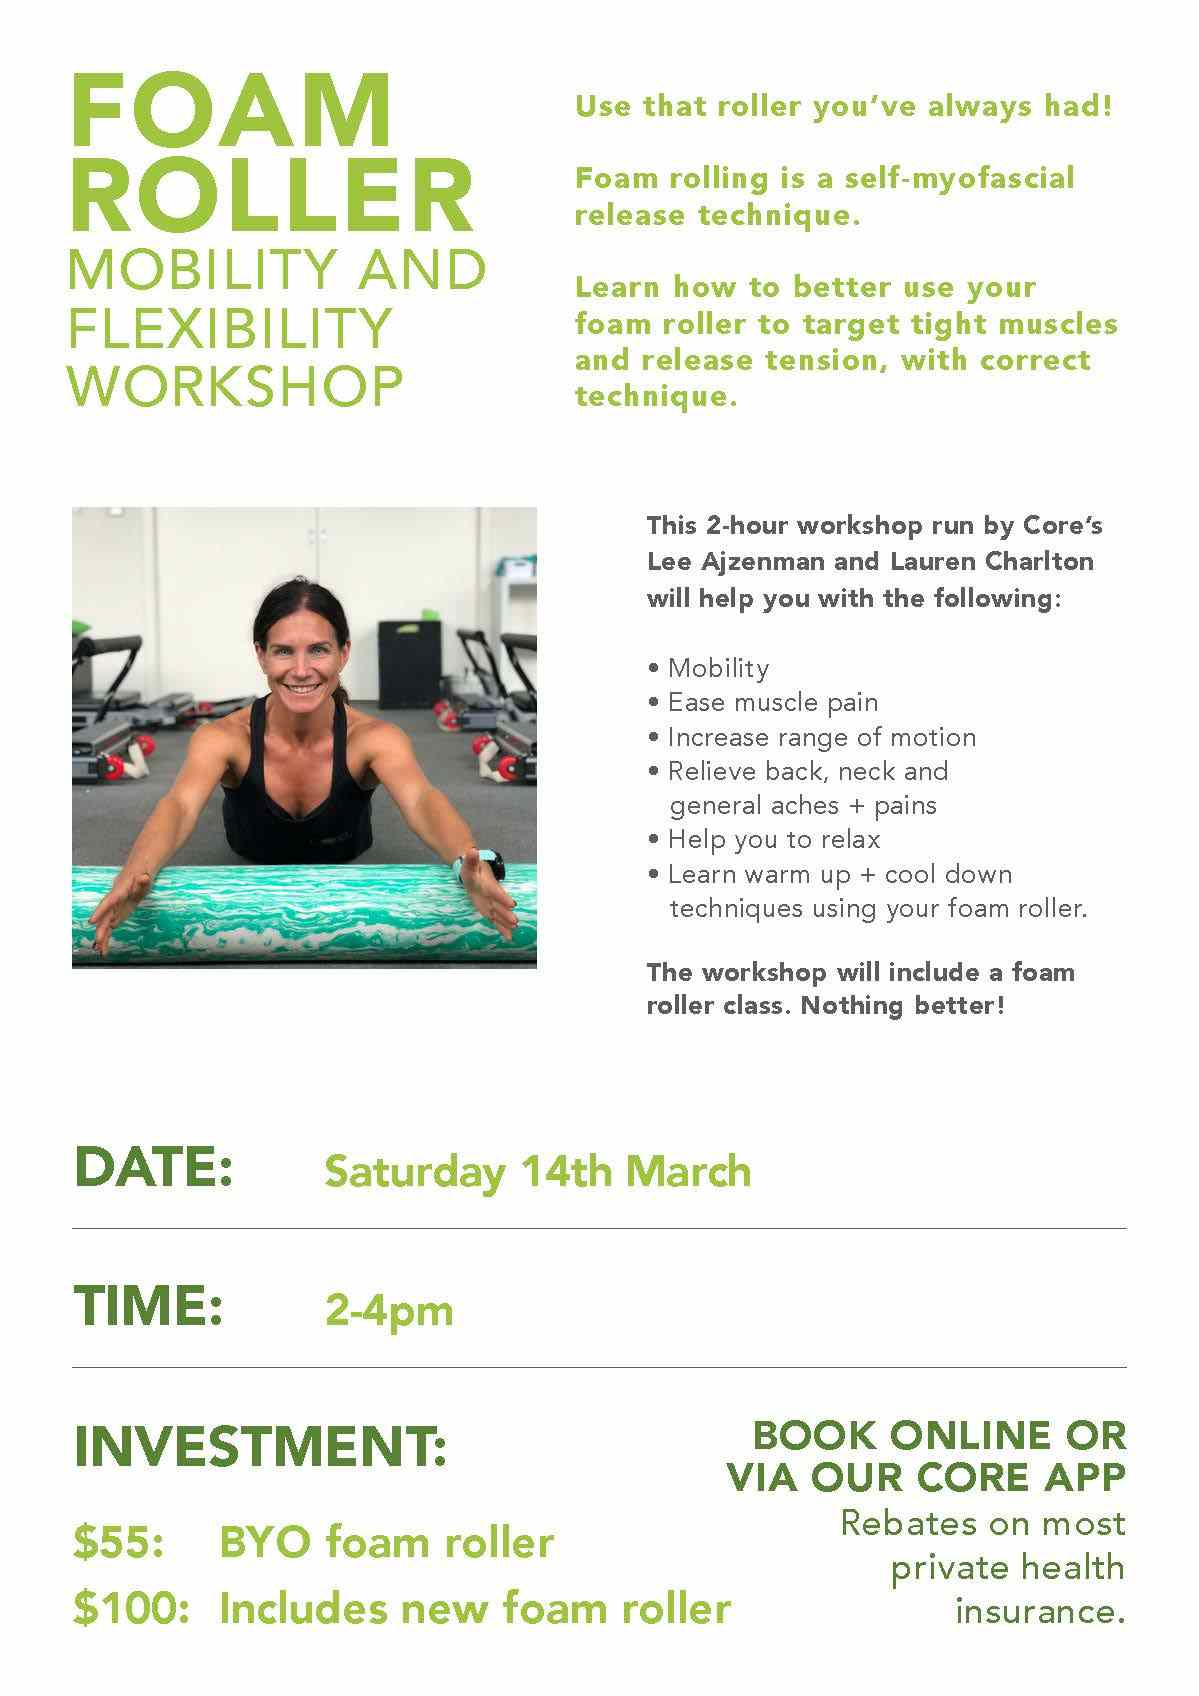 Foam roller mobility and flexibility workshop